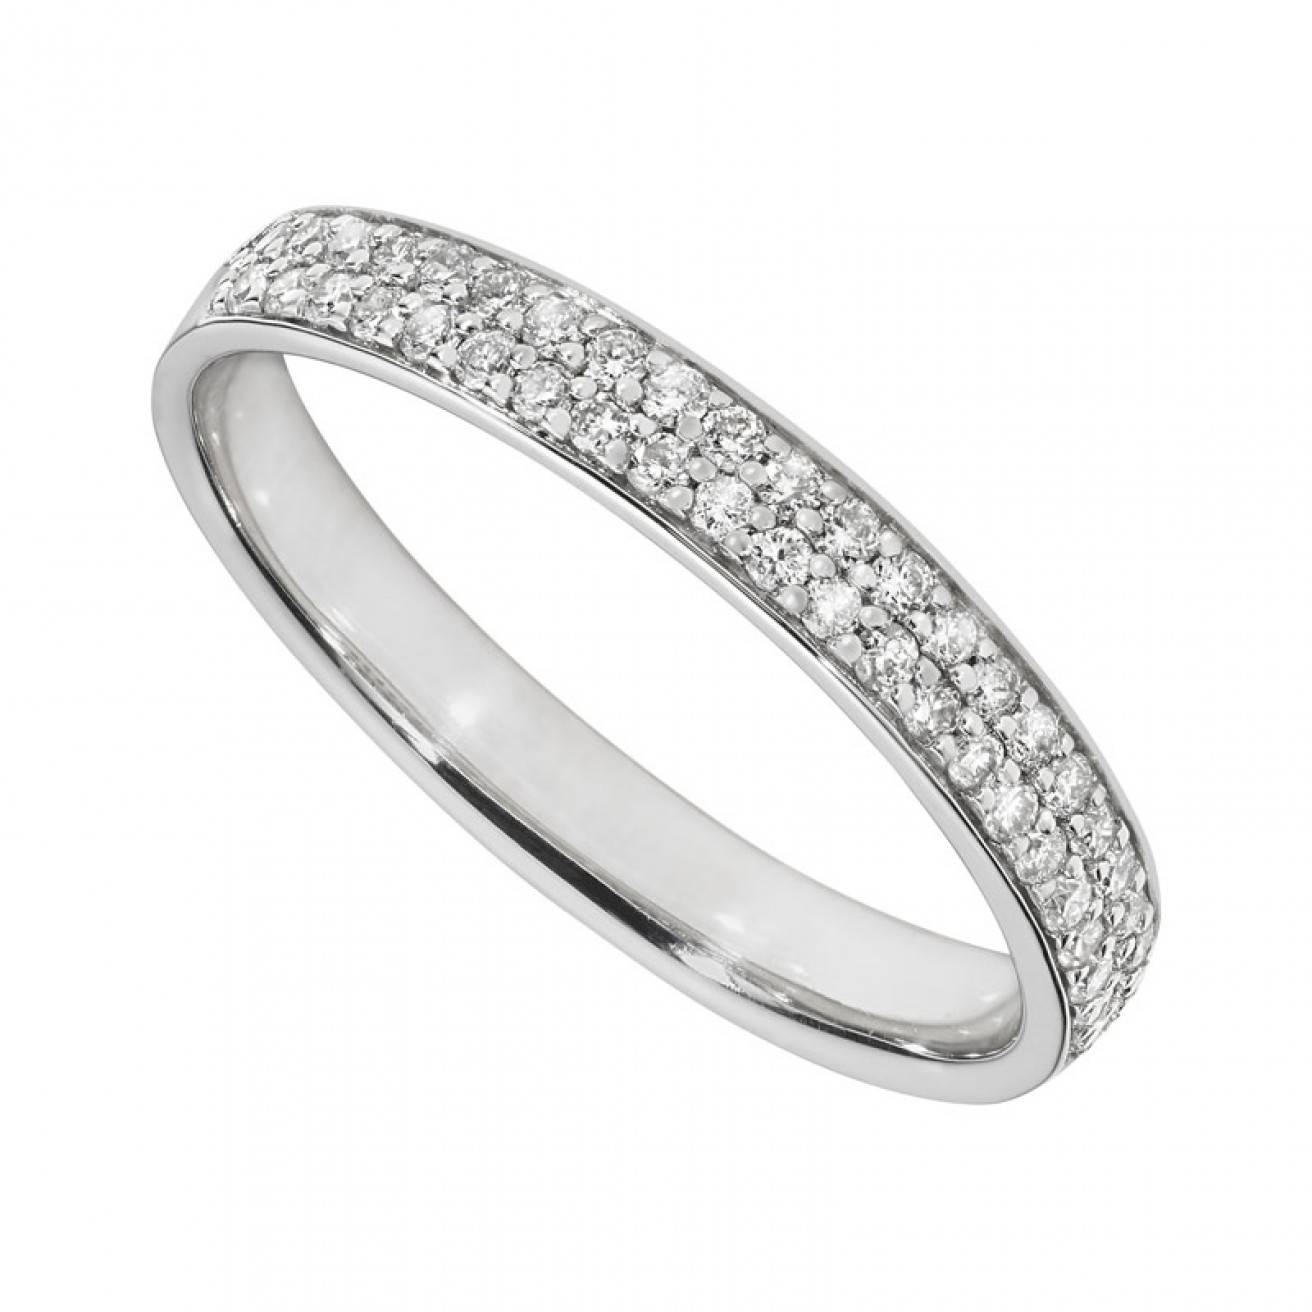 Buy 18ct White Gold Wedding Rings Online – Fields (View 11 of 15)